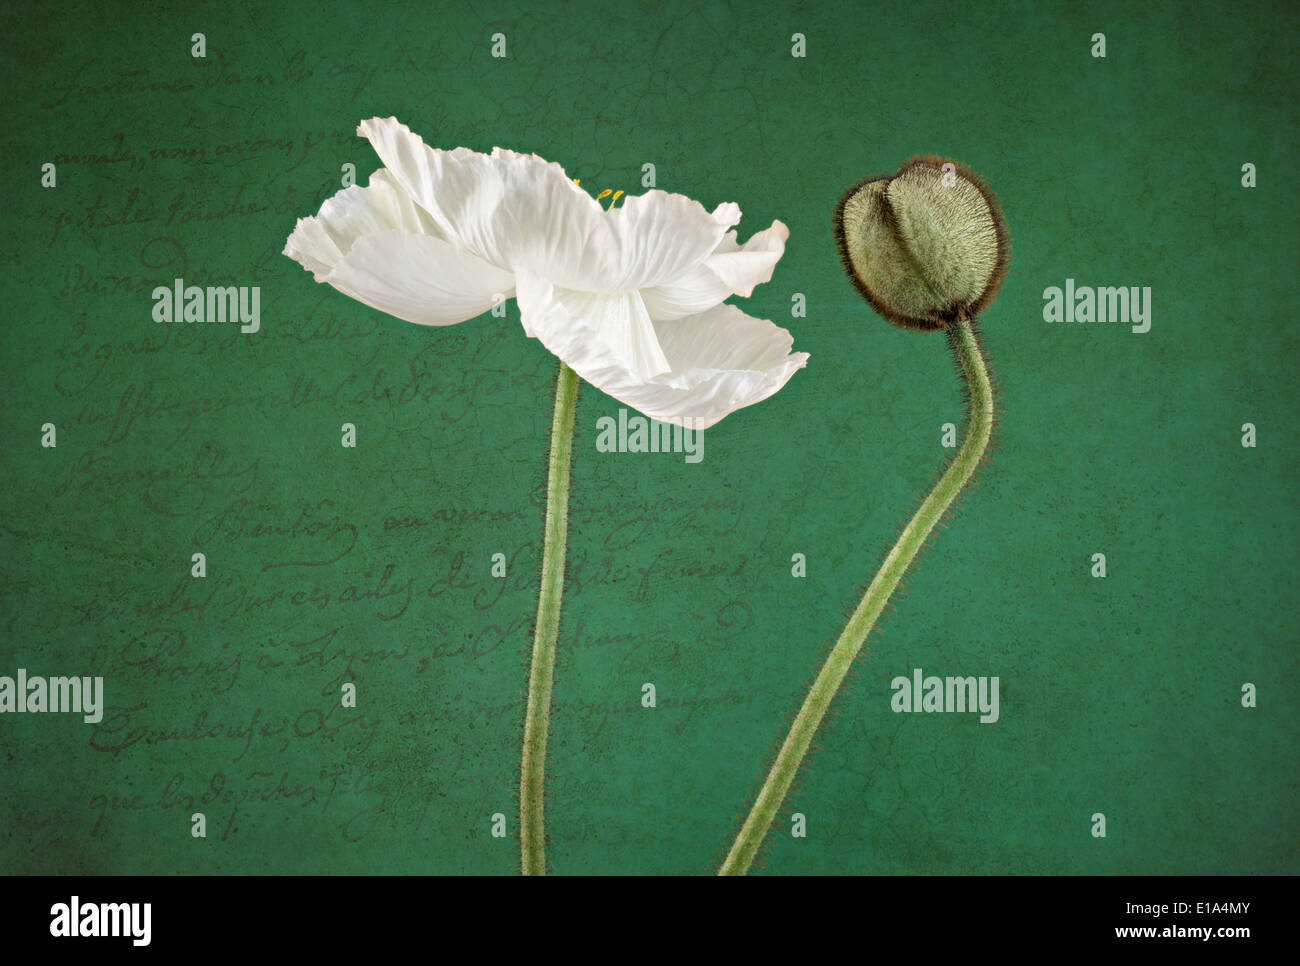 White Poppy and Bud on textured scripted background - Stock Image